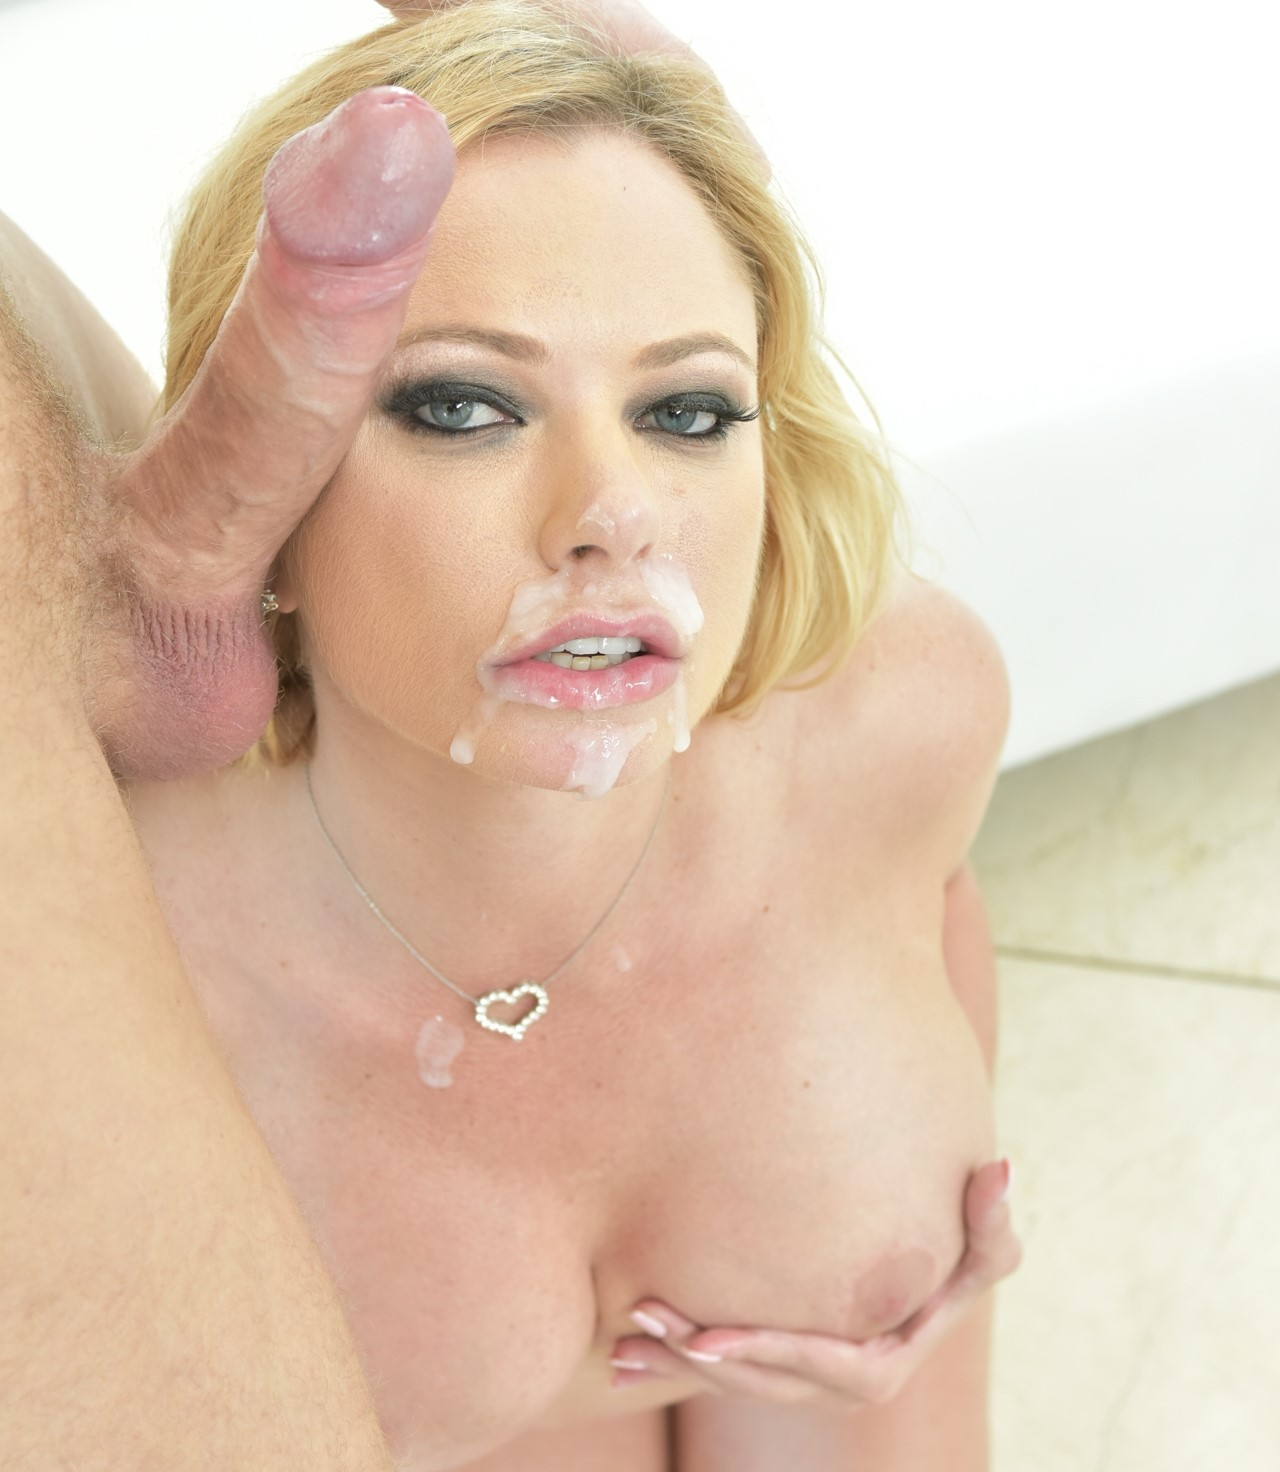 briana-banks-blowjob-and-facial-fucking